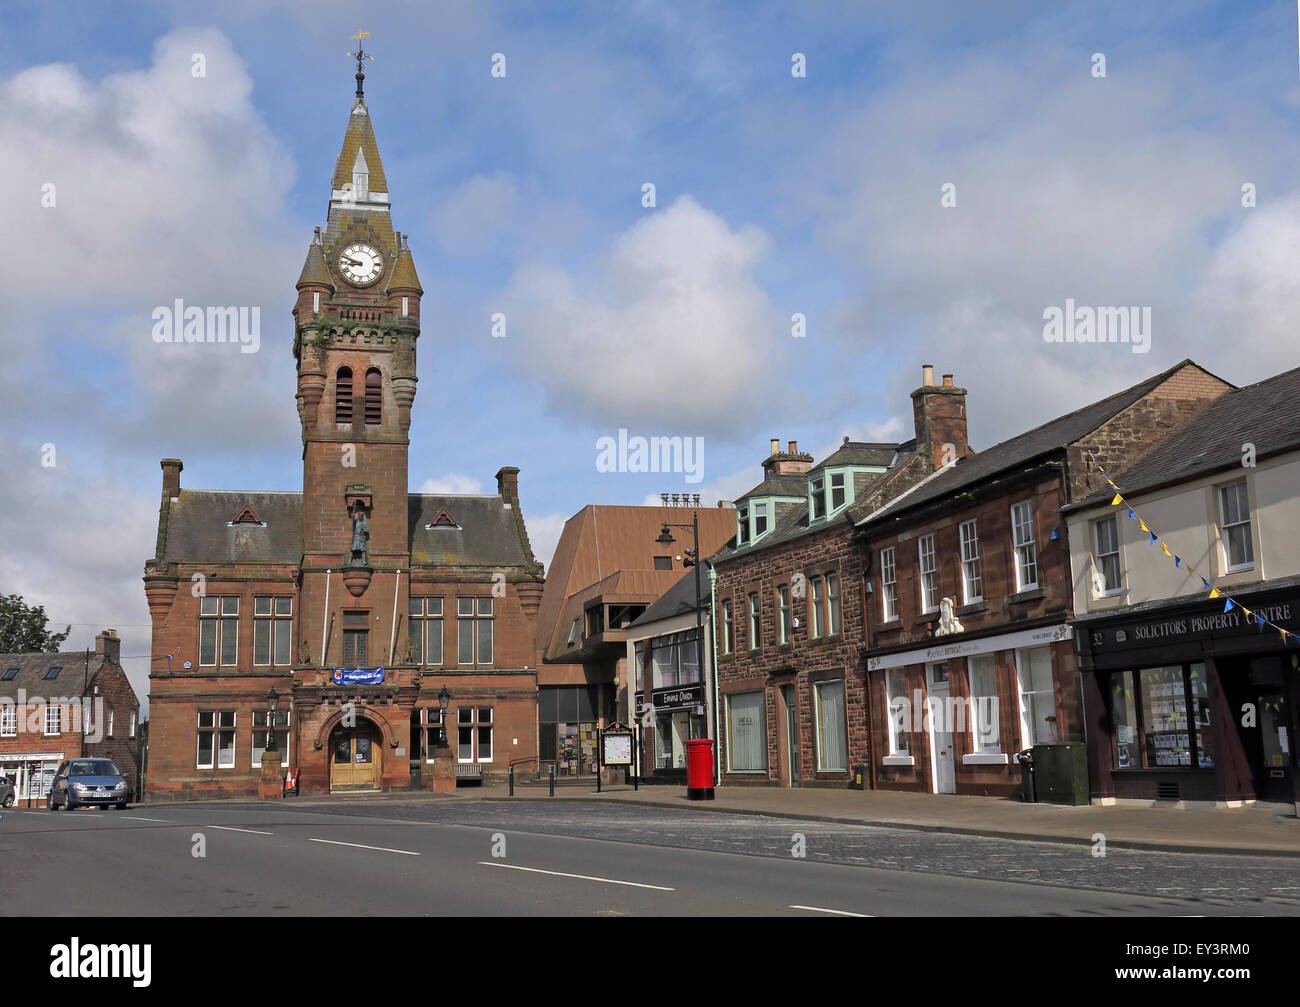 Annan town hall,Annan, Dumfries & Galloway - Municipal buildings - Stock Image